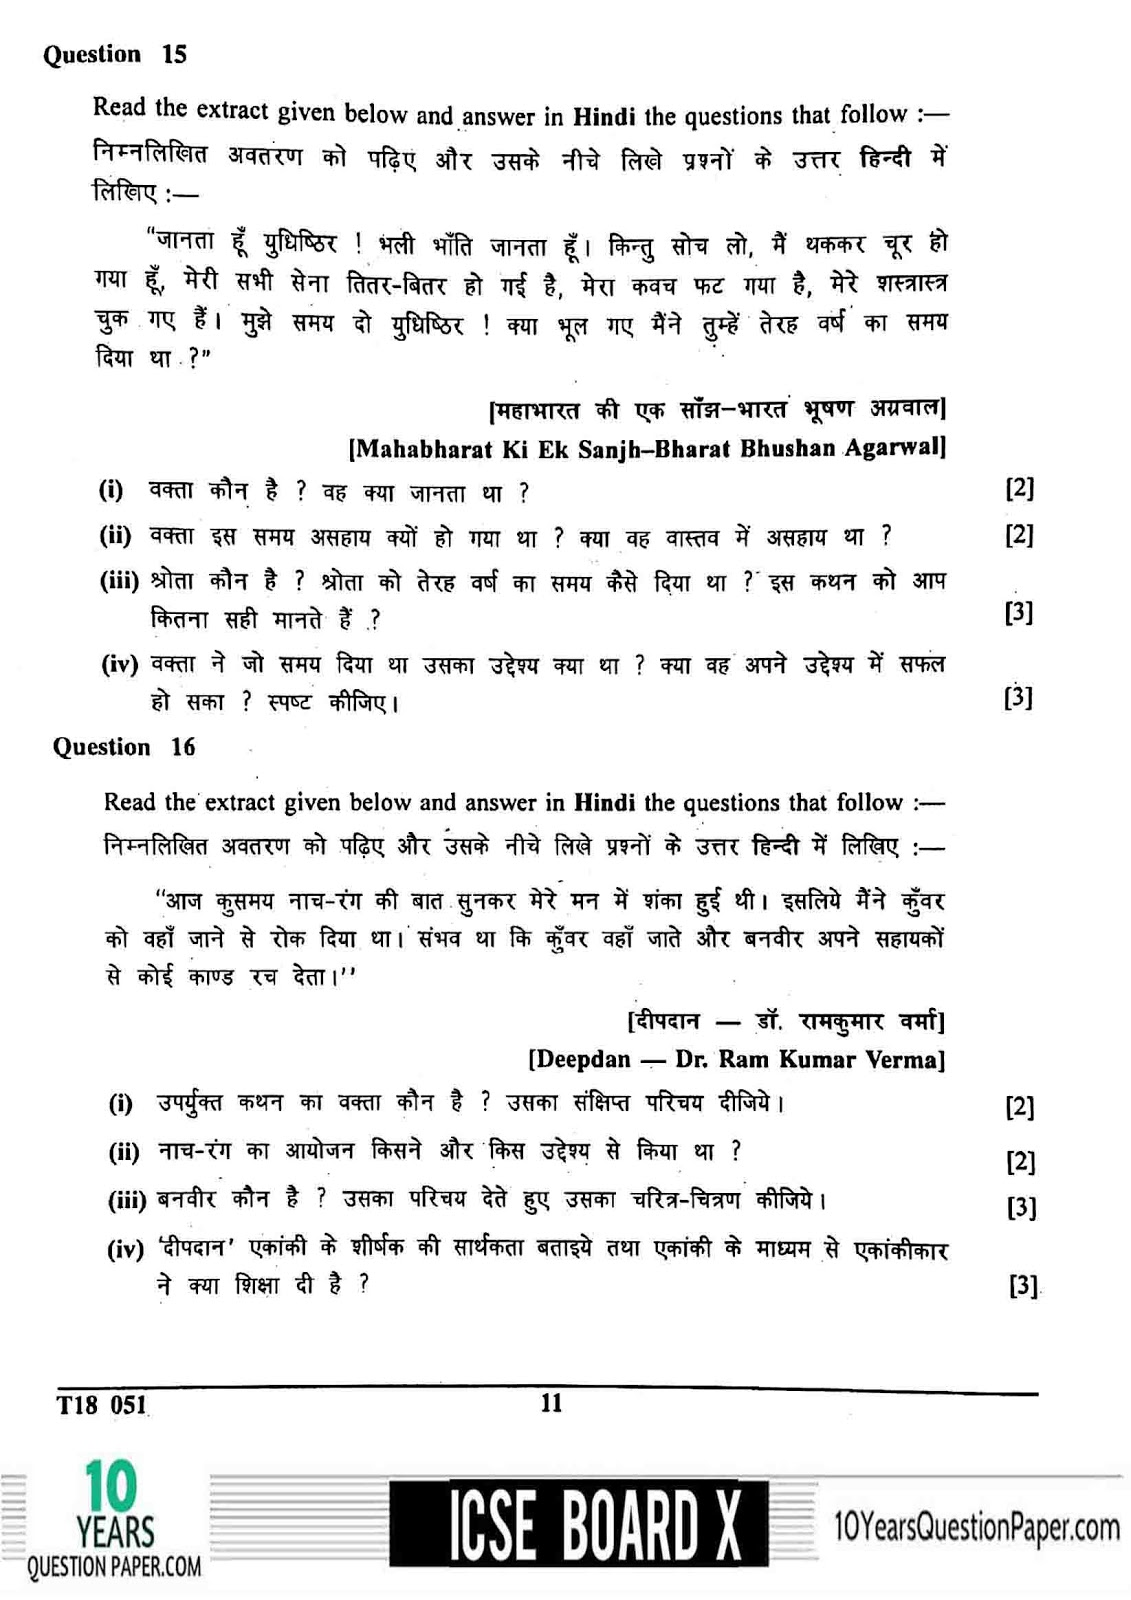 ICSE Board 2018 class 10th Hindi question paper page-11